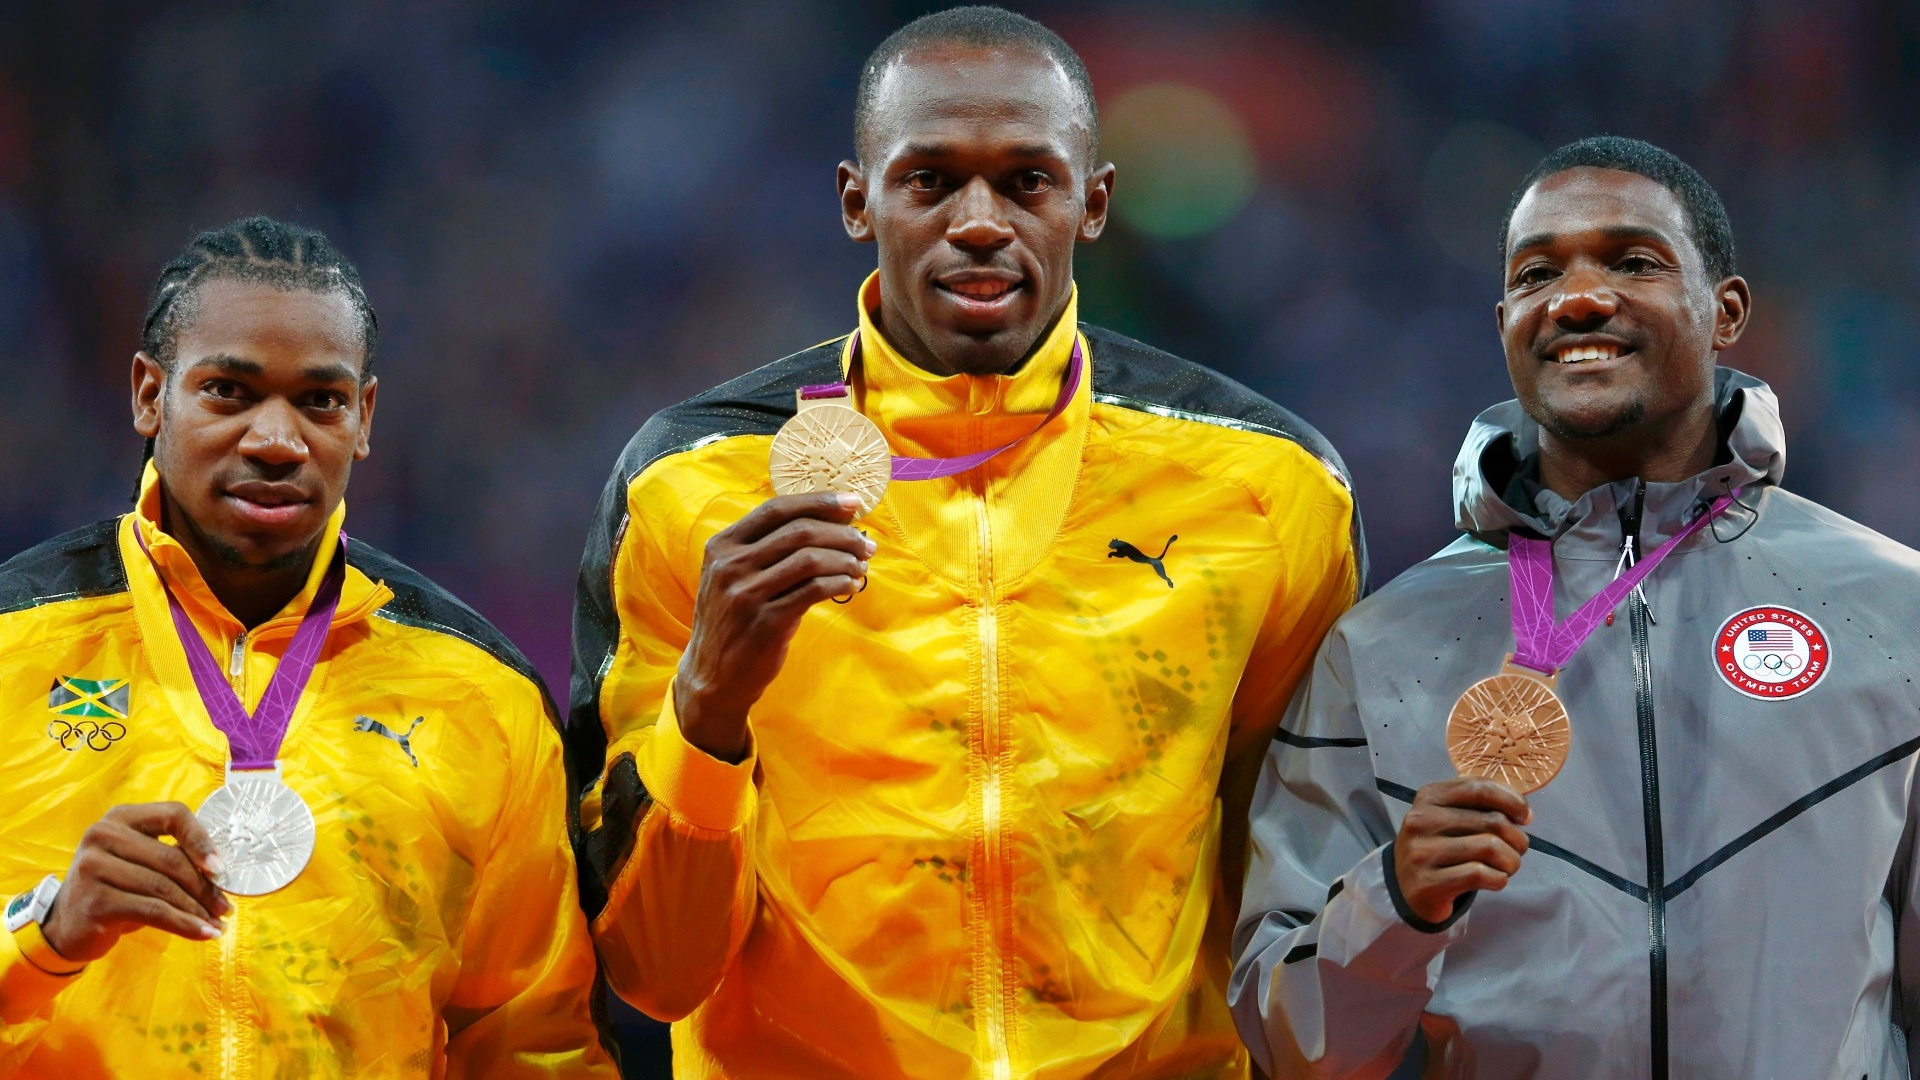 Da esquerda para direita, Yohan Blake, Usain Bolt e Justin Gatlin exibem medalhas conquistas na prova dos 100 m rasos